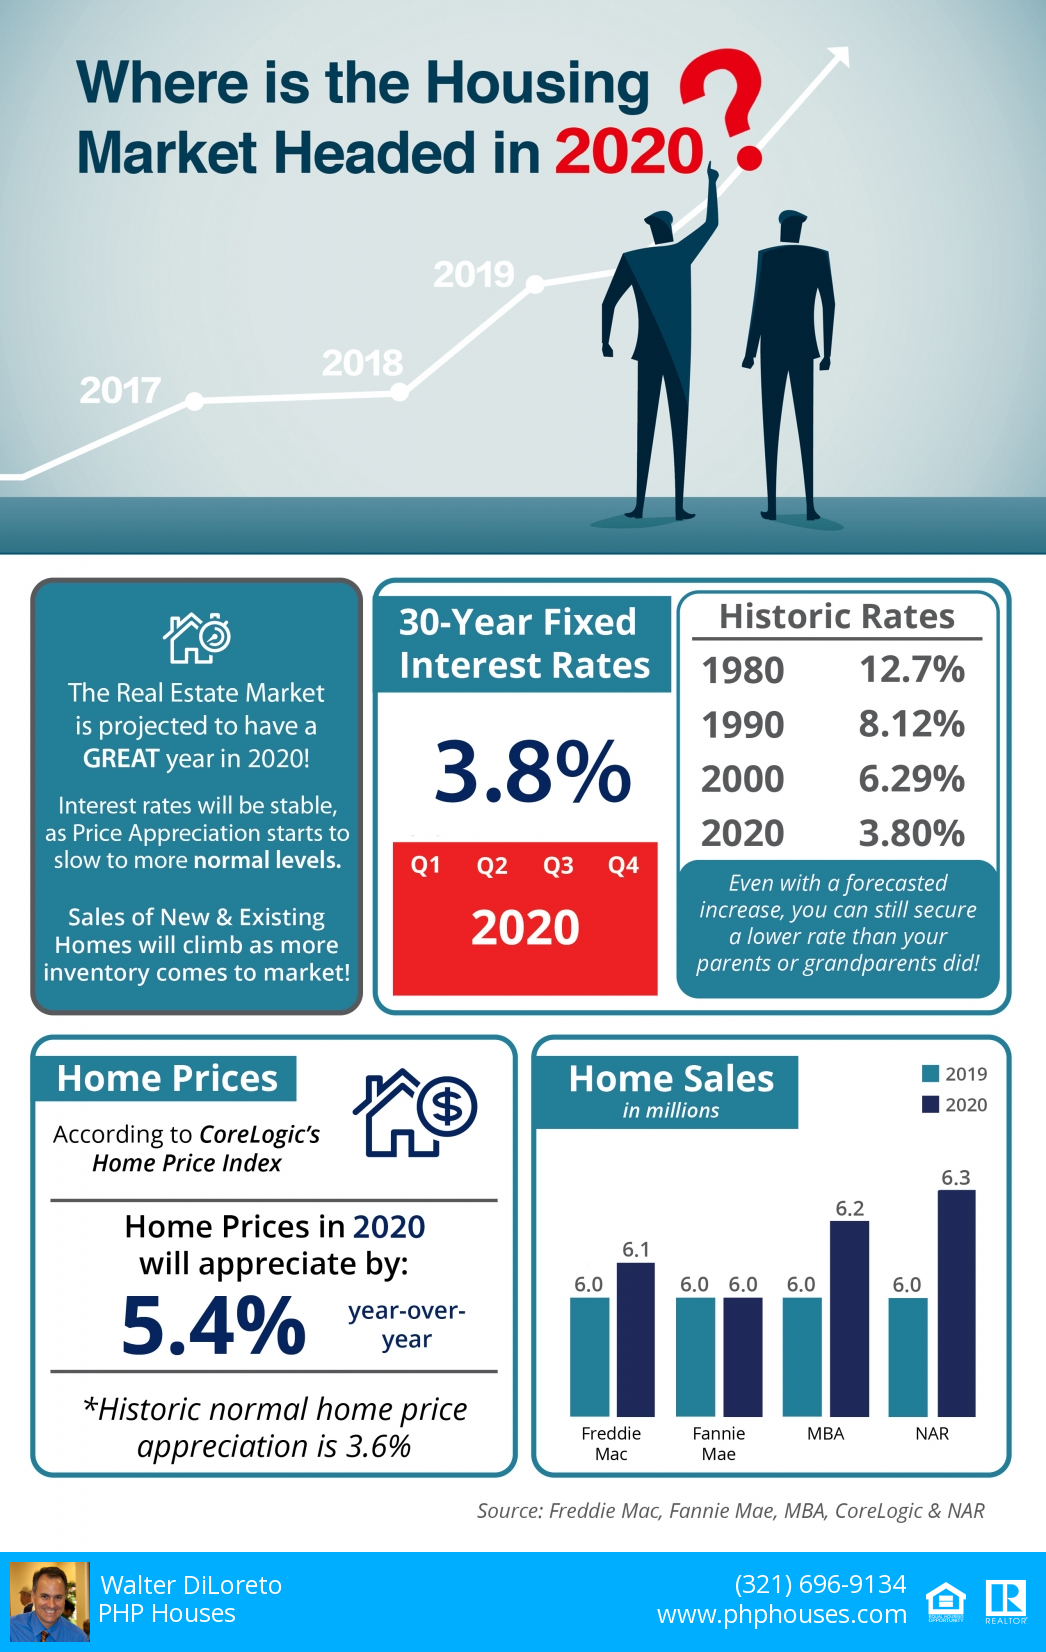 Where is heading the Real Estate market in 2020?